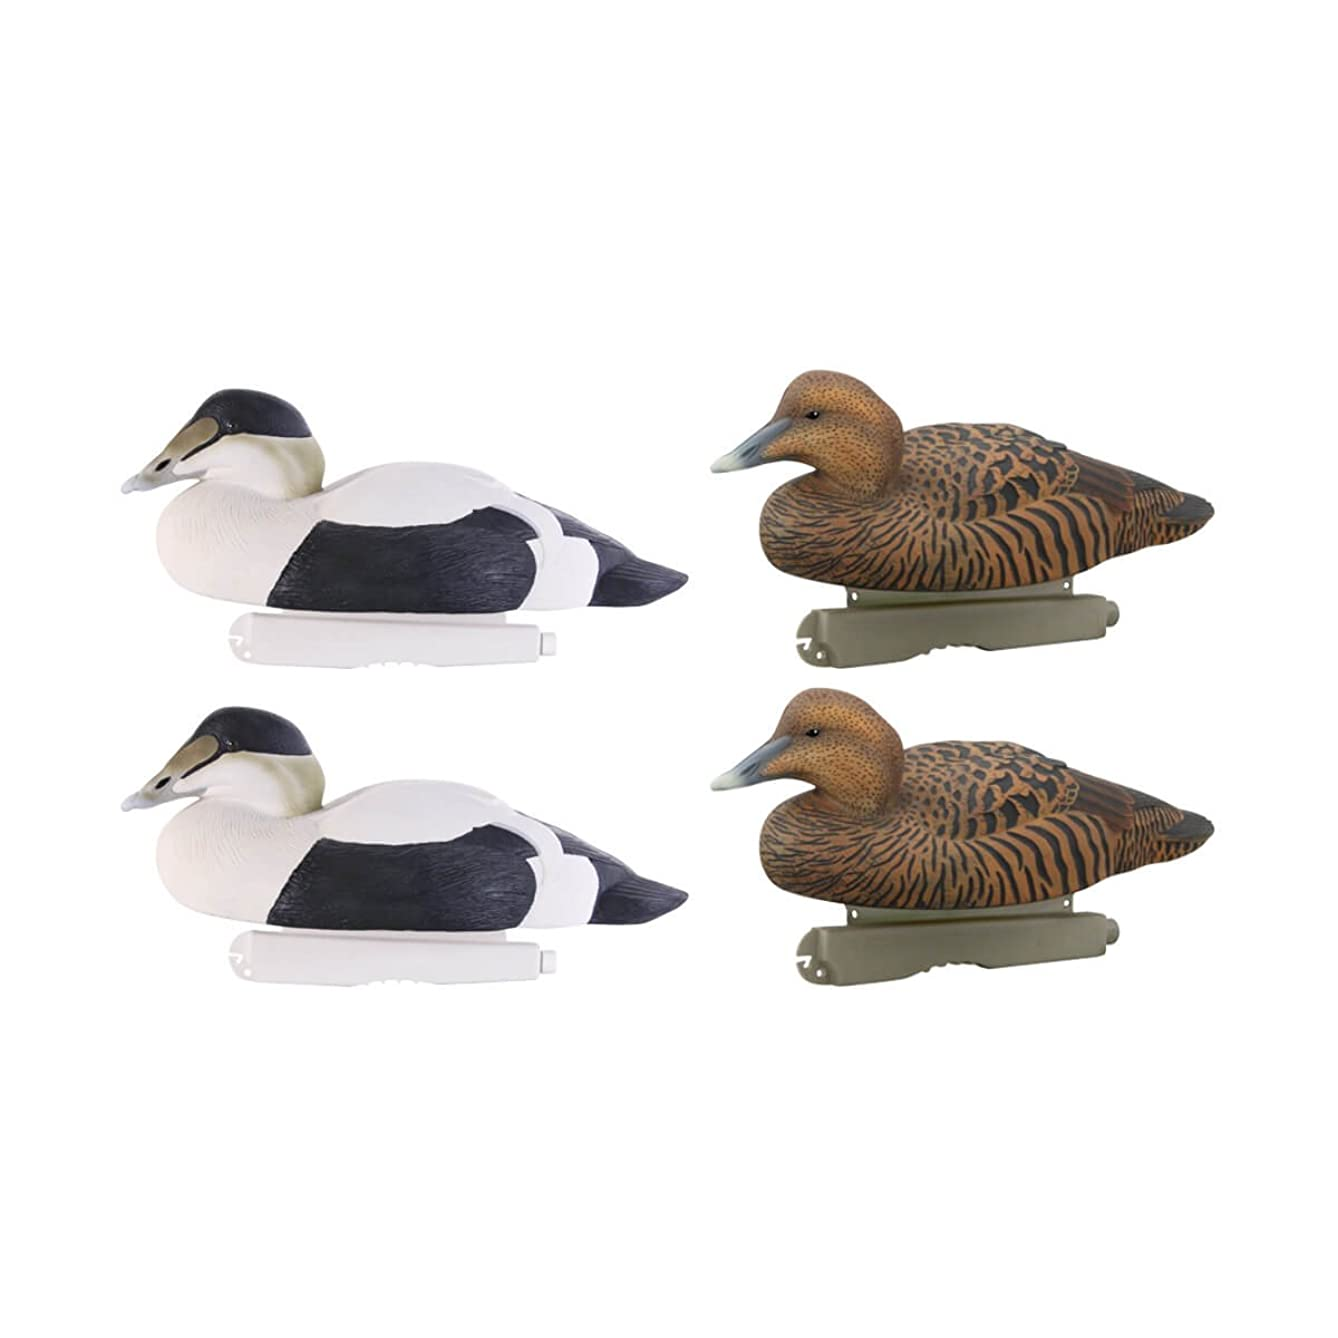 Avery Hunting Gear PG Eiders (4 Pack)